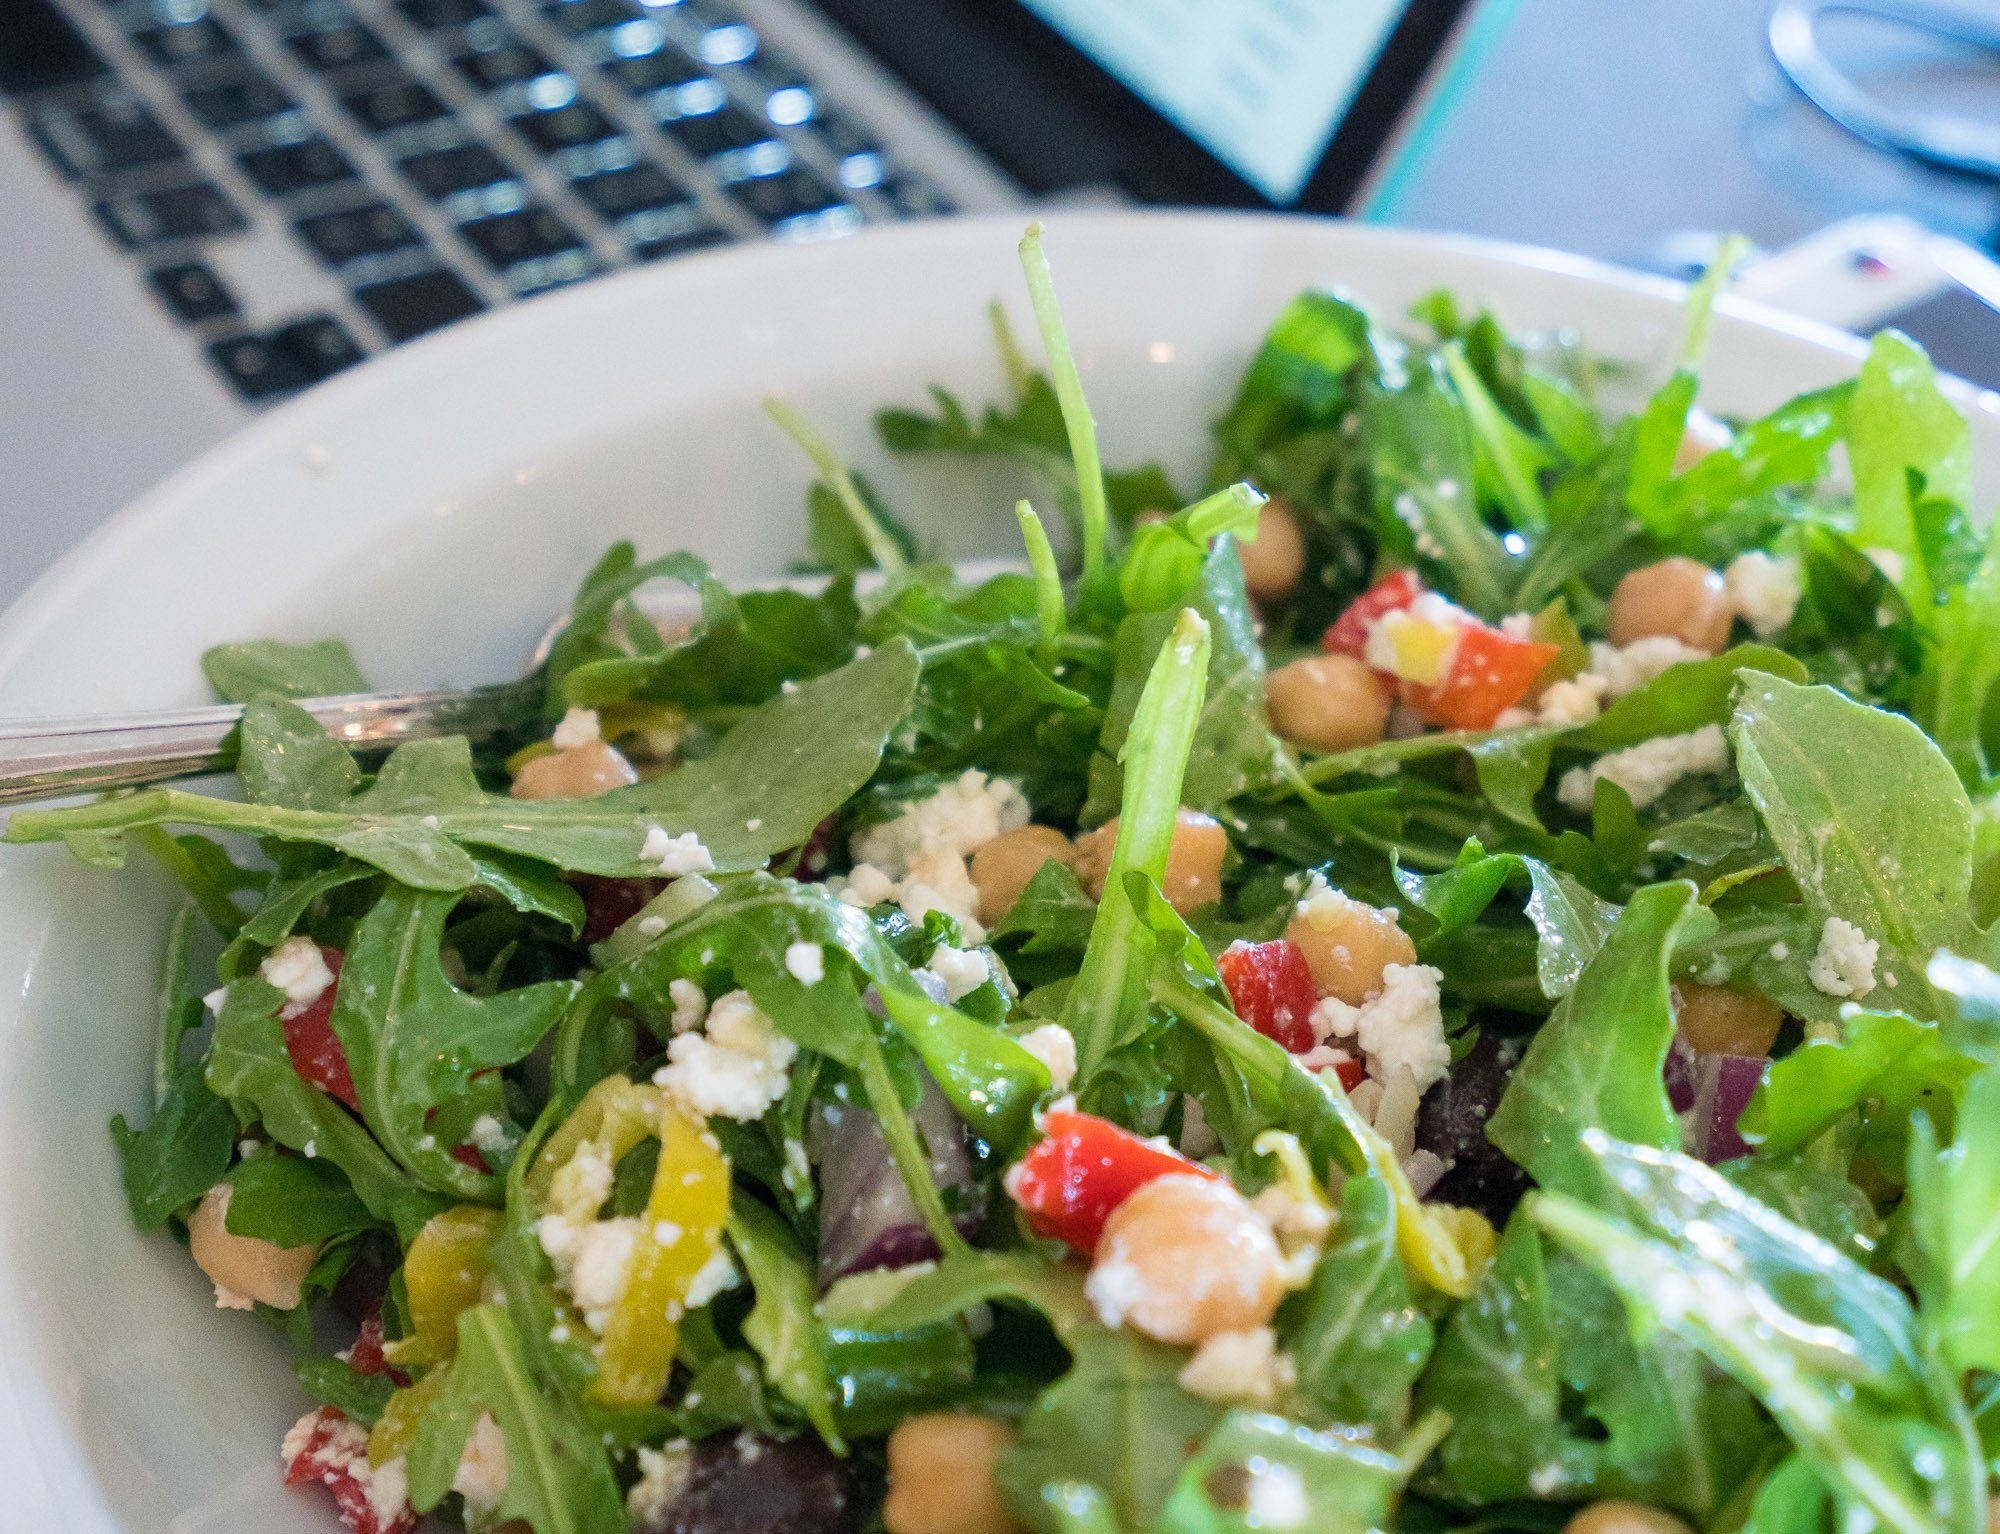 A gorgeous Greek Farmer's Fix salad that I had delivered to home.